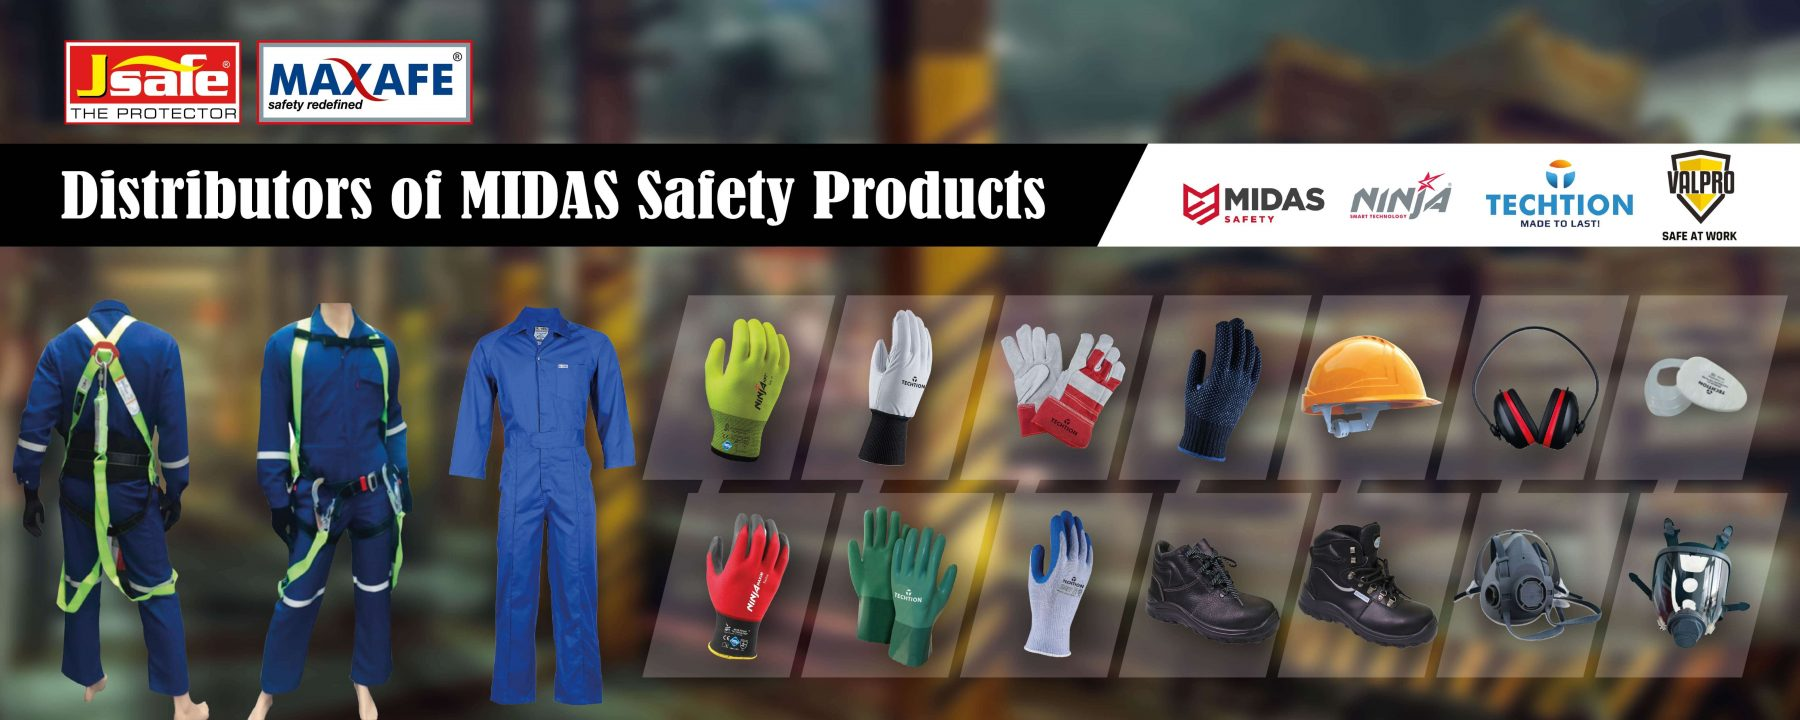 Deira Safety Protection Equipment - Best Equipment In The World